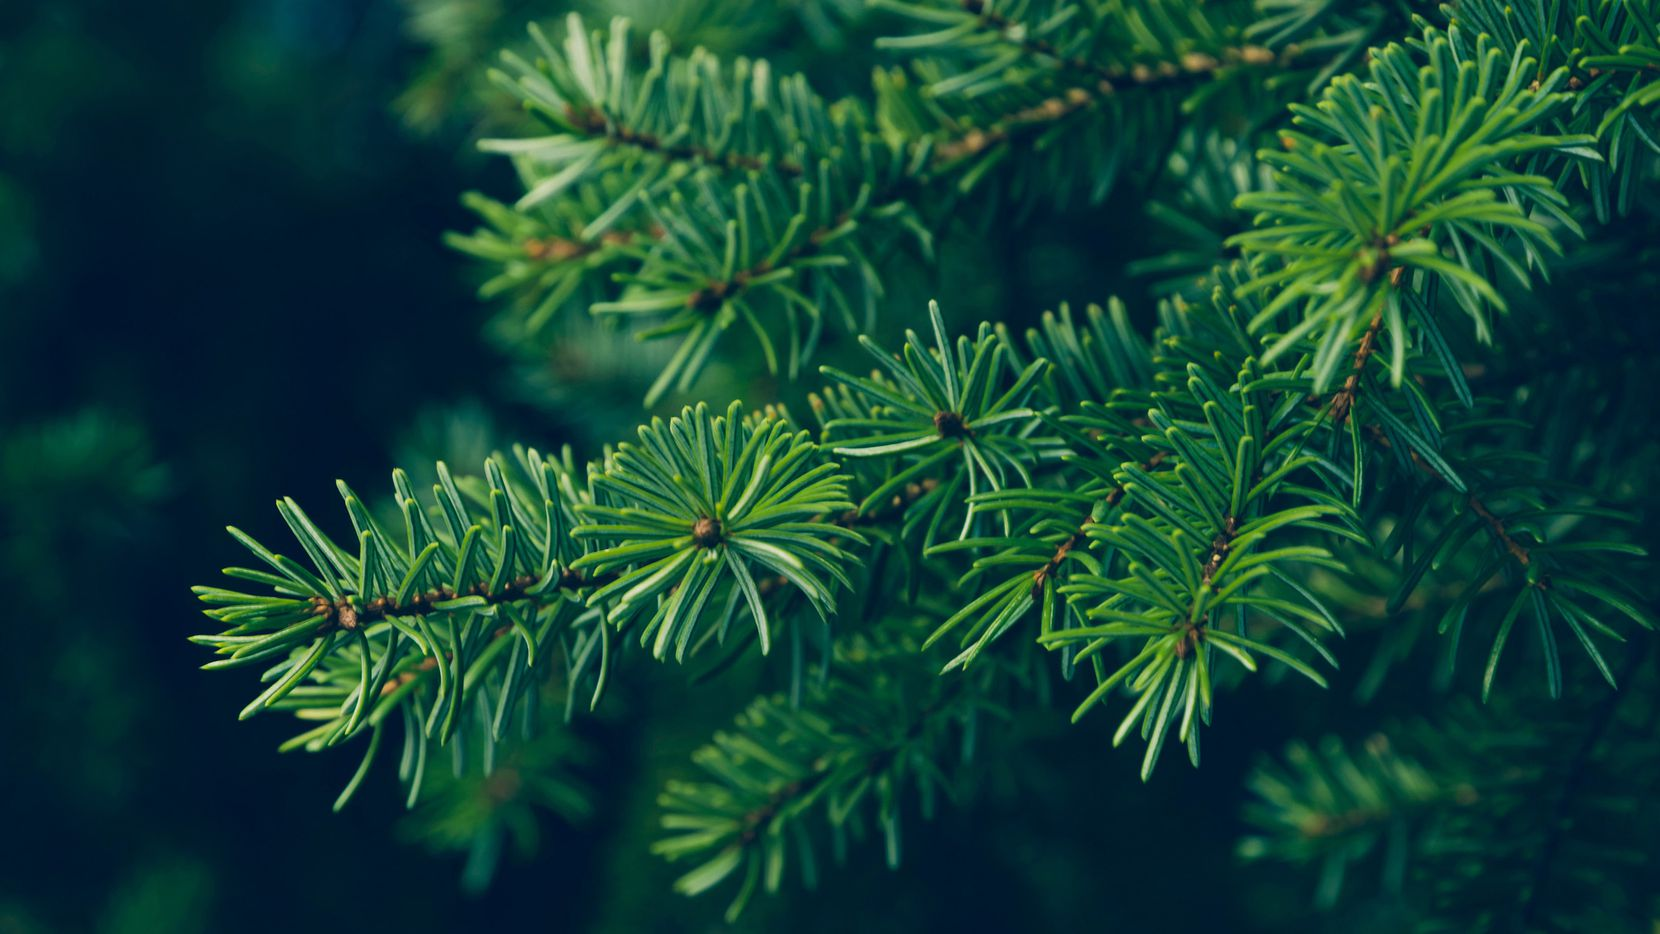 Evergreen needle leaves are smaller and have less surface area than deciduous leaves, so they survive cold temperatures better.